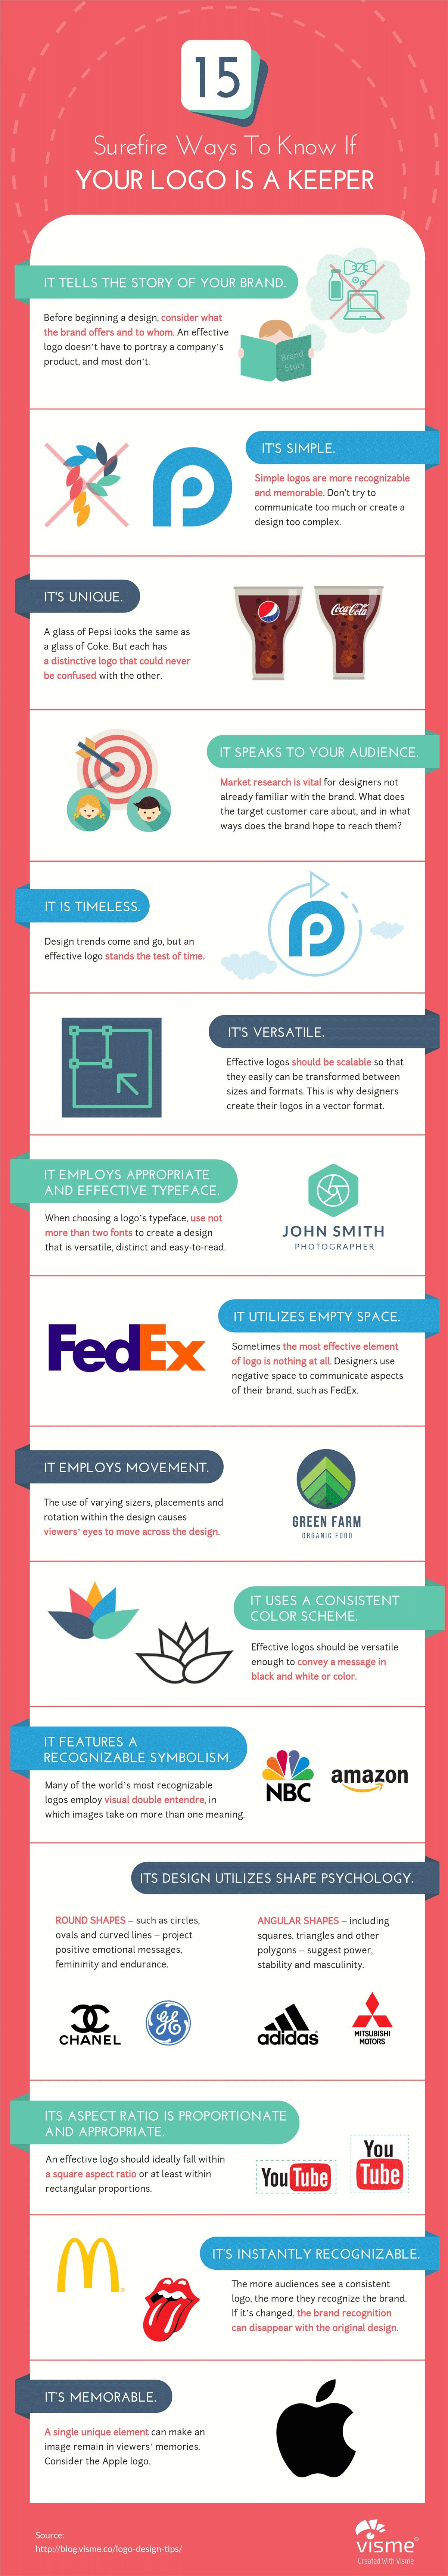 15-surefire-ways-to-know-if-your-logo-is-a-keeper-infographic